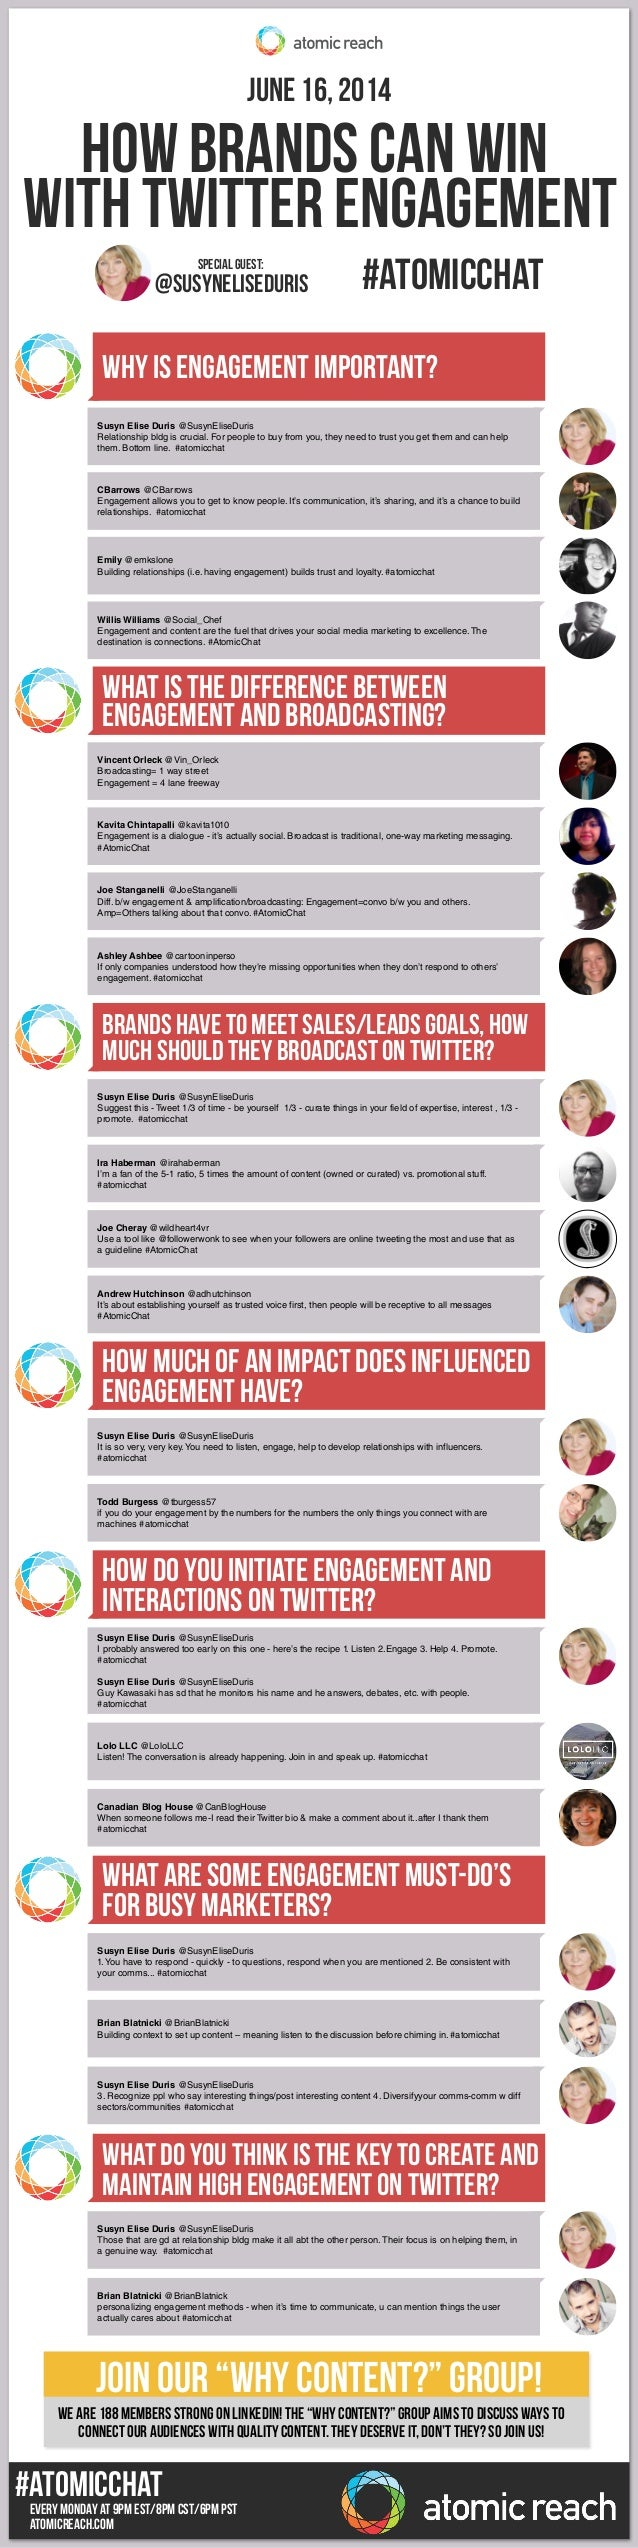 EVERY MONDAY at 9PM EST/8pm CST/6pm pst #ATOMICCHAT ATOMICREACH.com #ATOMICCHAT June 16, 2014 How brands can win with Twit...